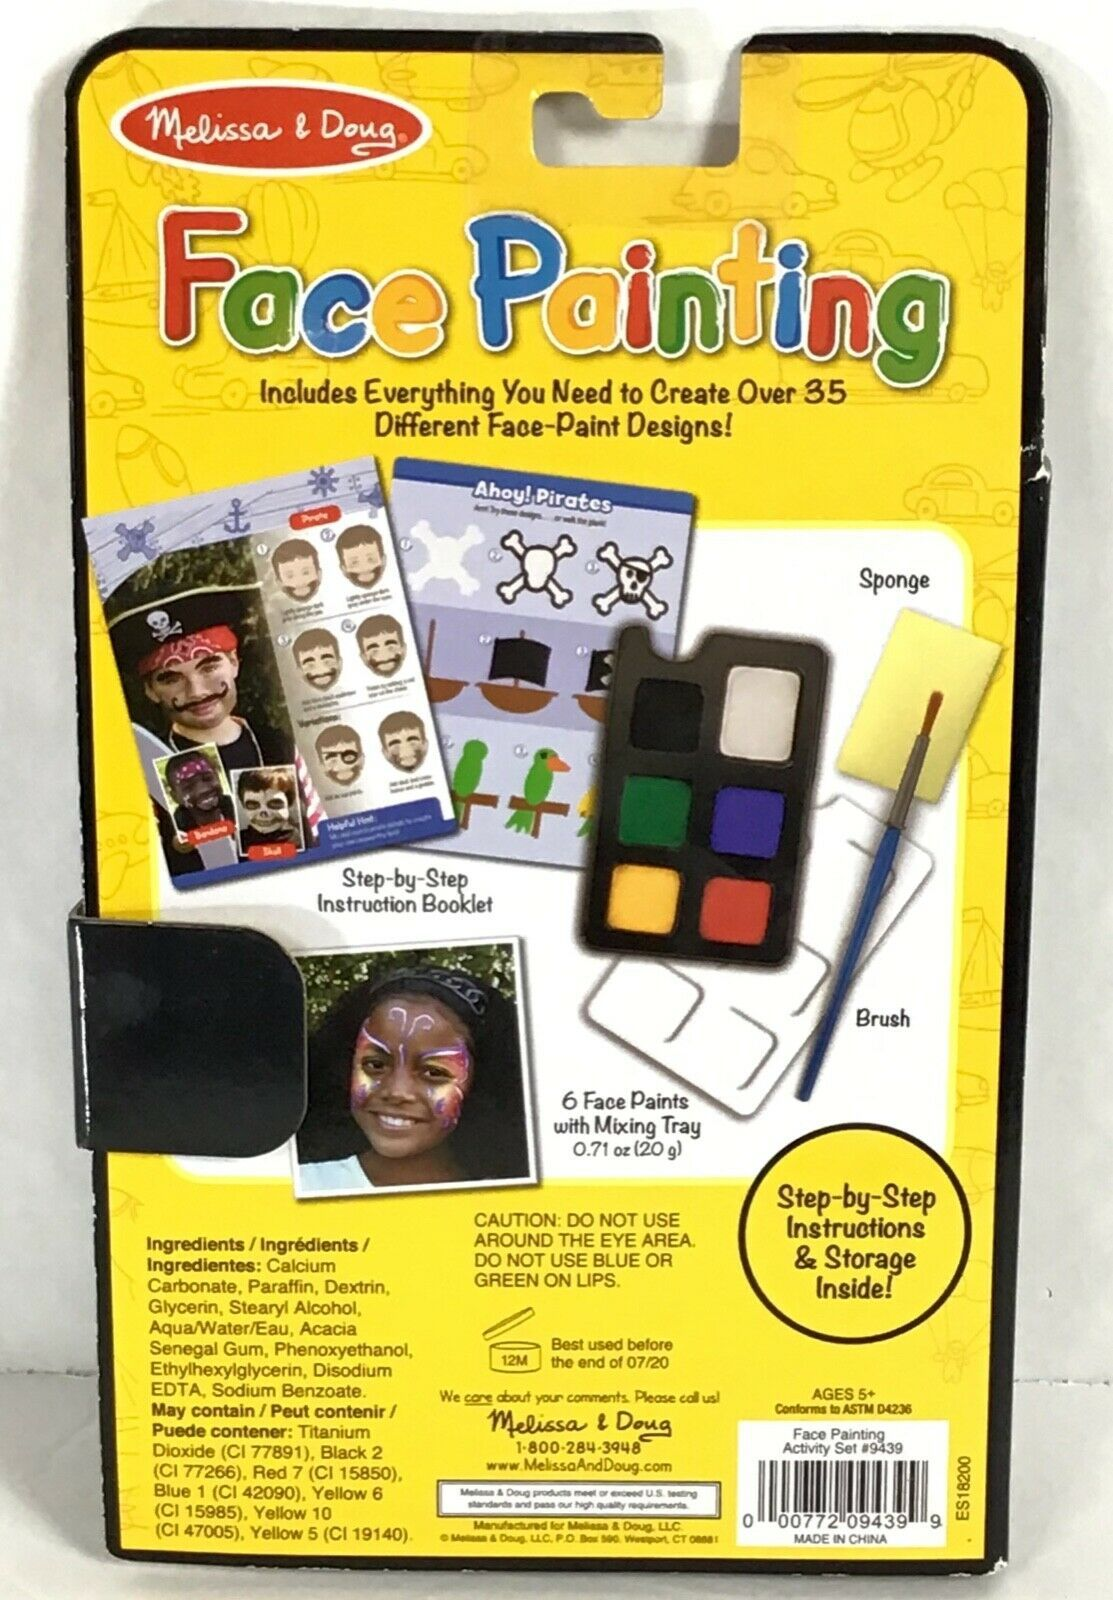 Melissa Doug Face Painting Design Kit Craft Activity Set Book Travel Play P5-20 image 2